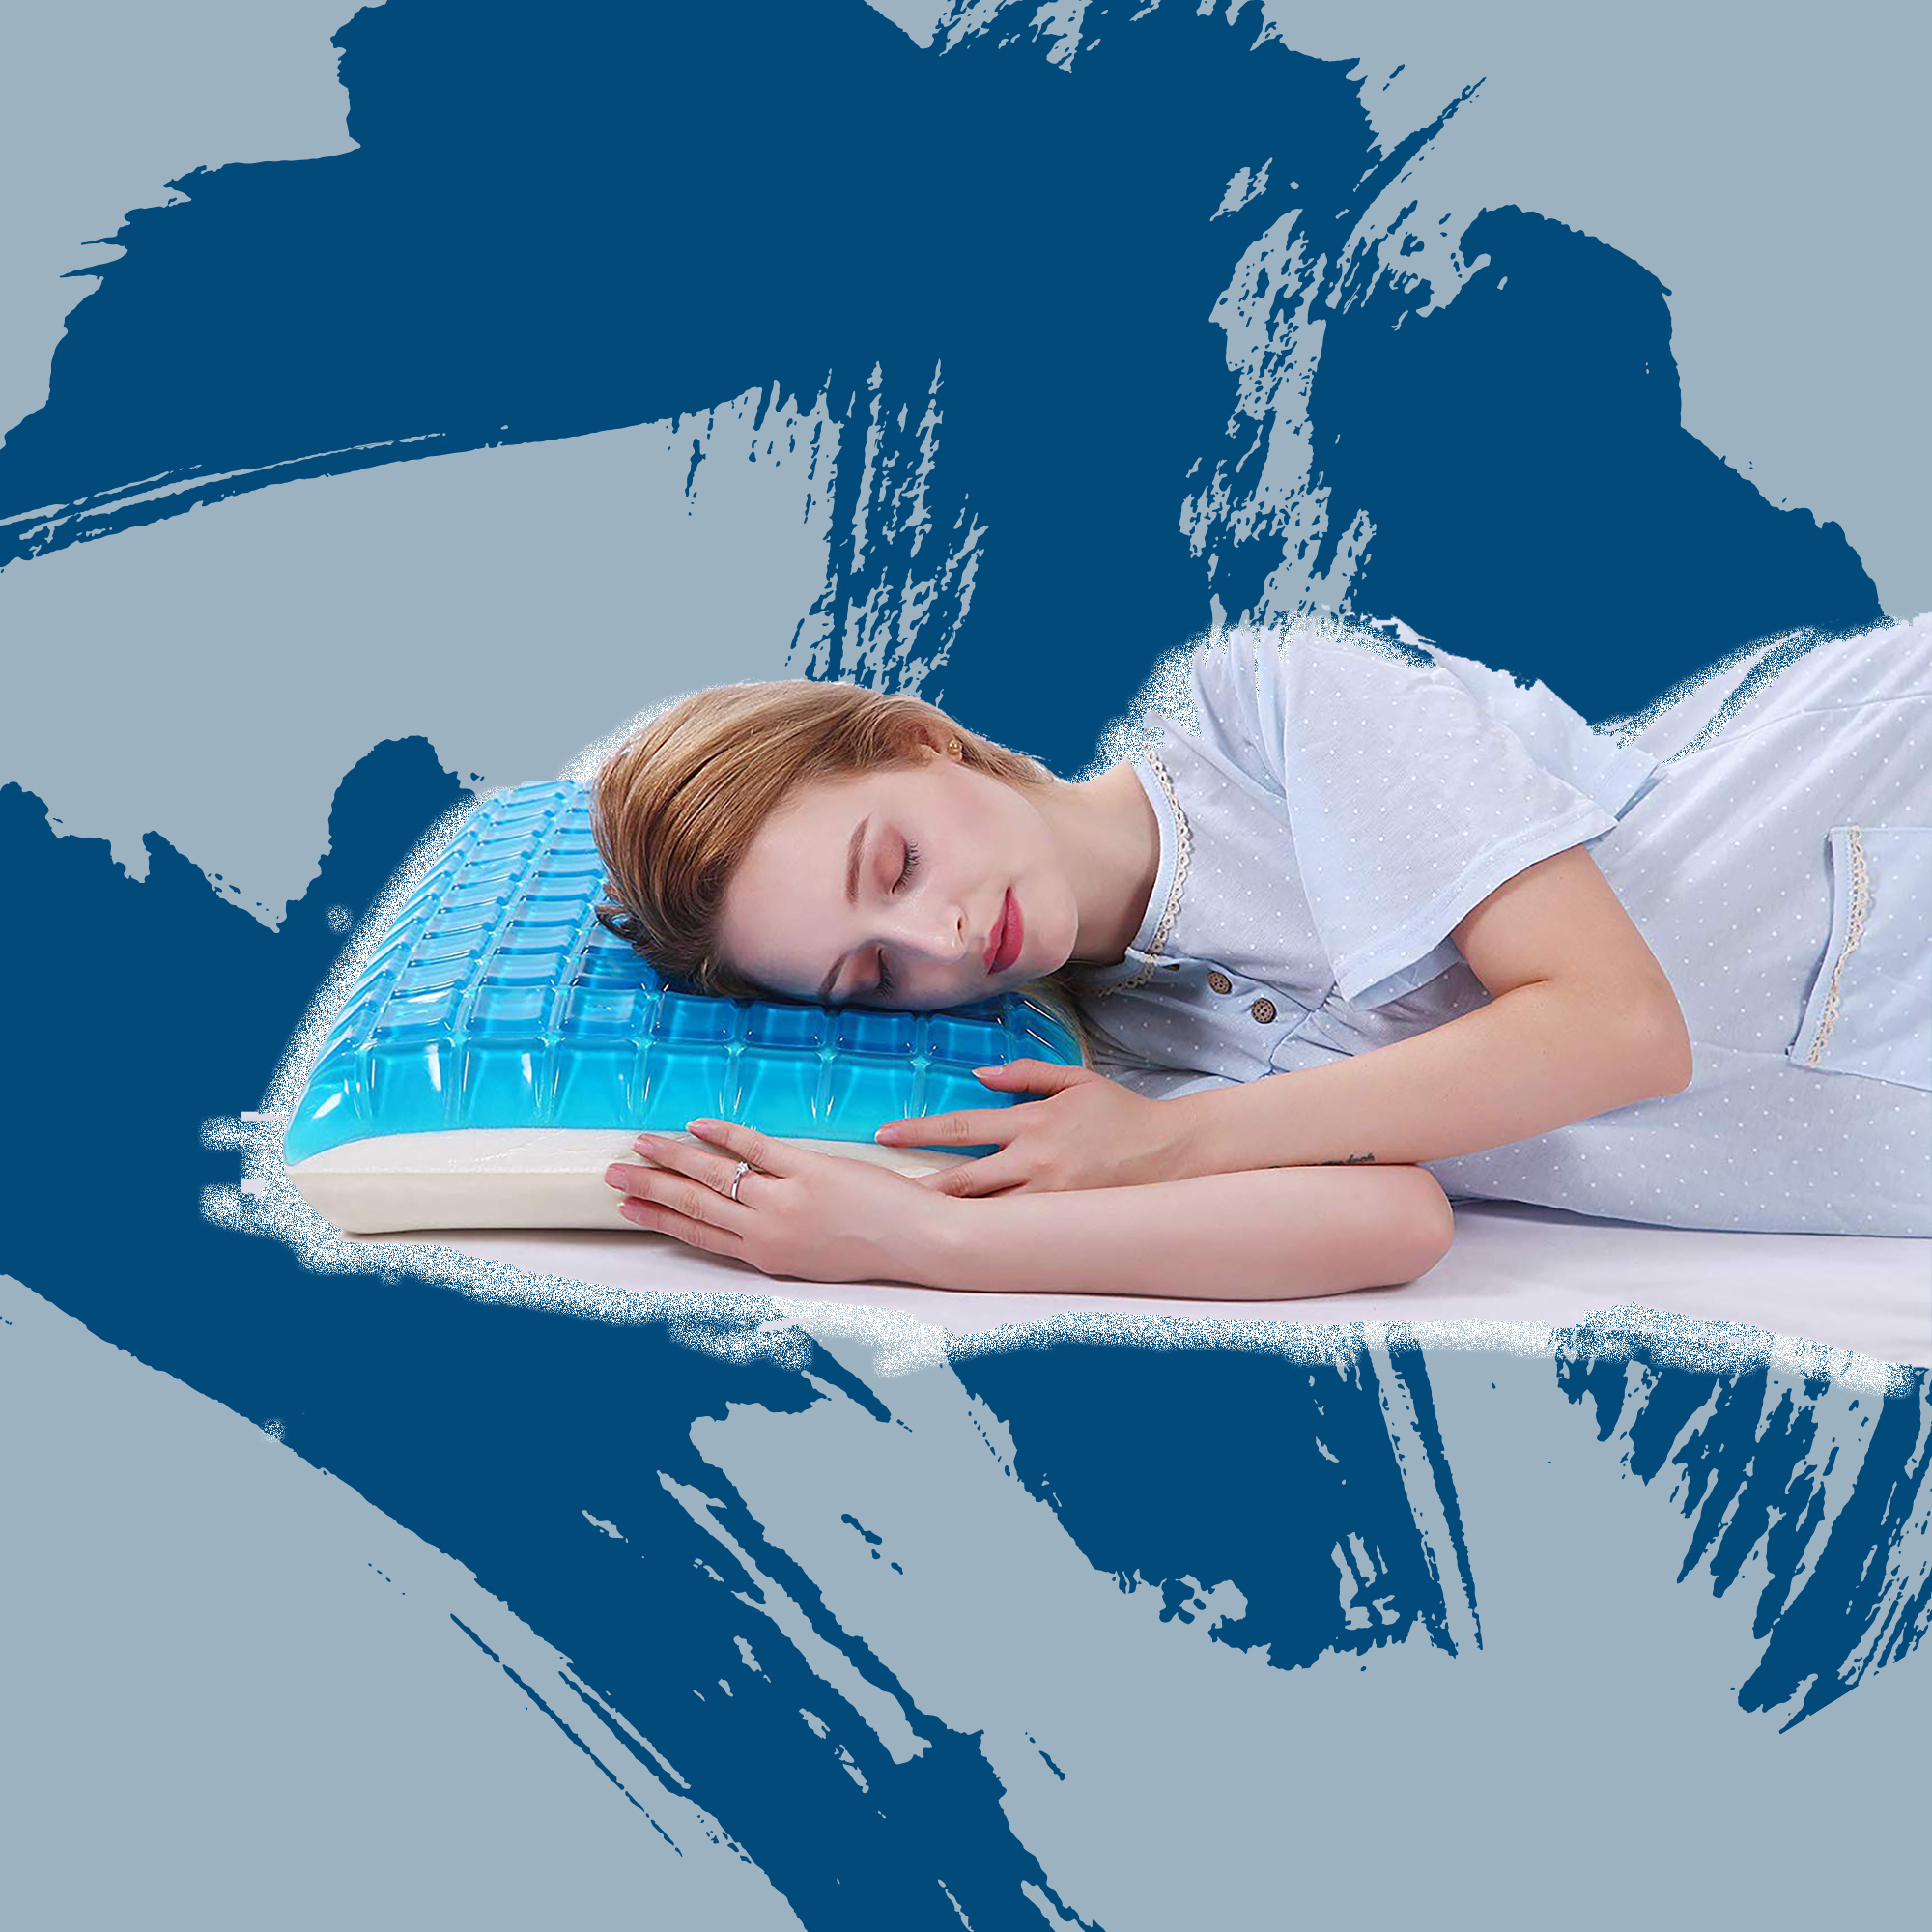 Best Pillows Australia The Best Cooling Pillows For Night Sweats